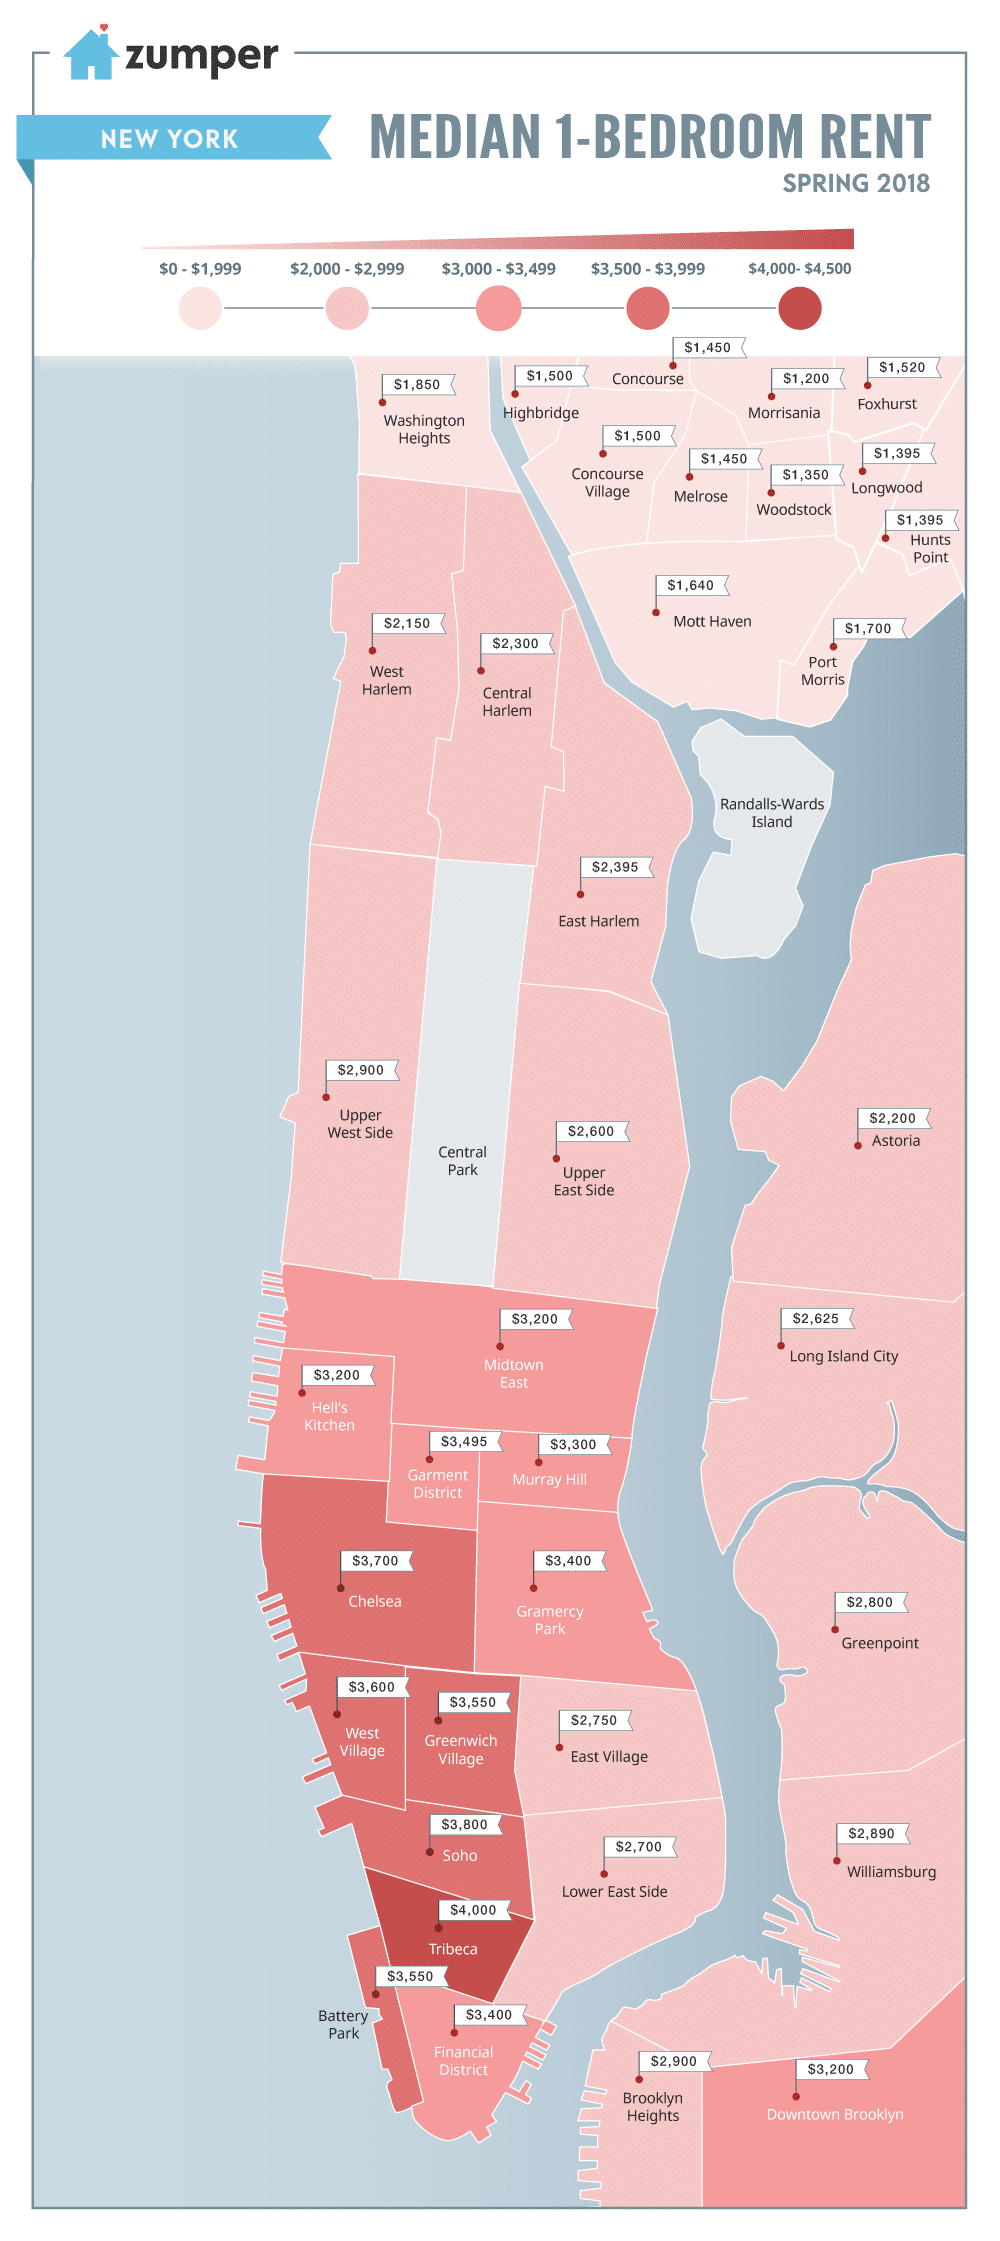 Rent Price Map Mapping New York City Neighborhood Rent Prices This Spring 2018